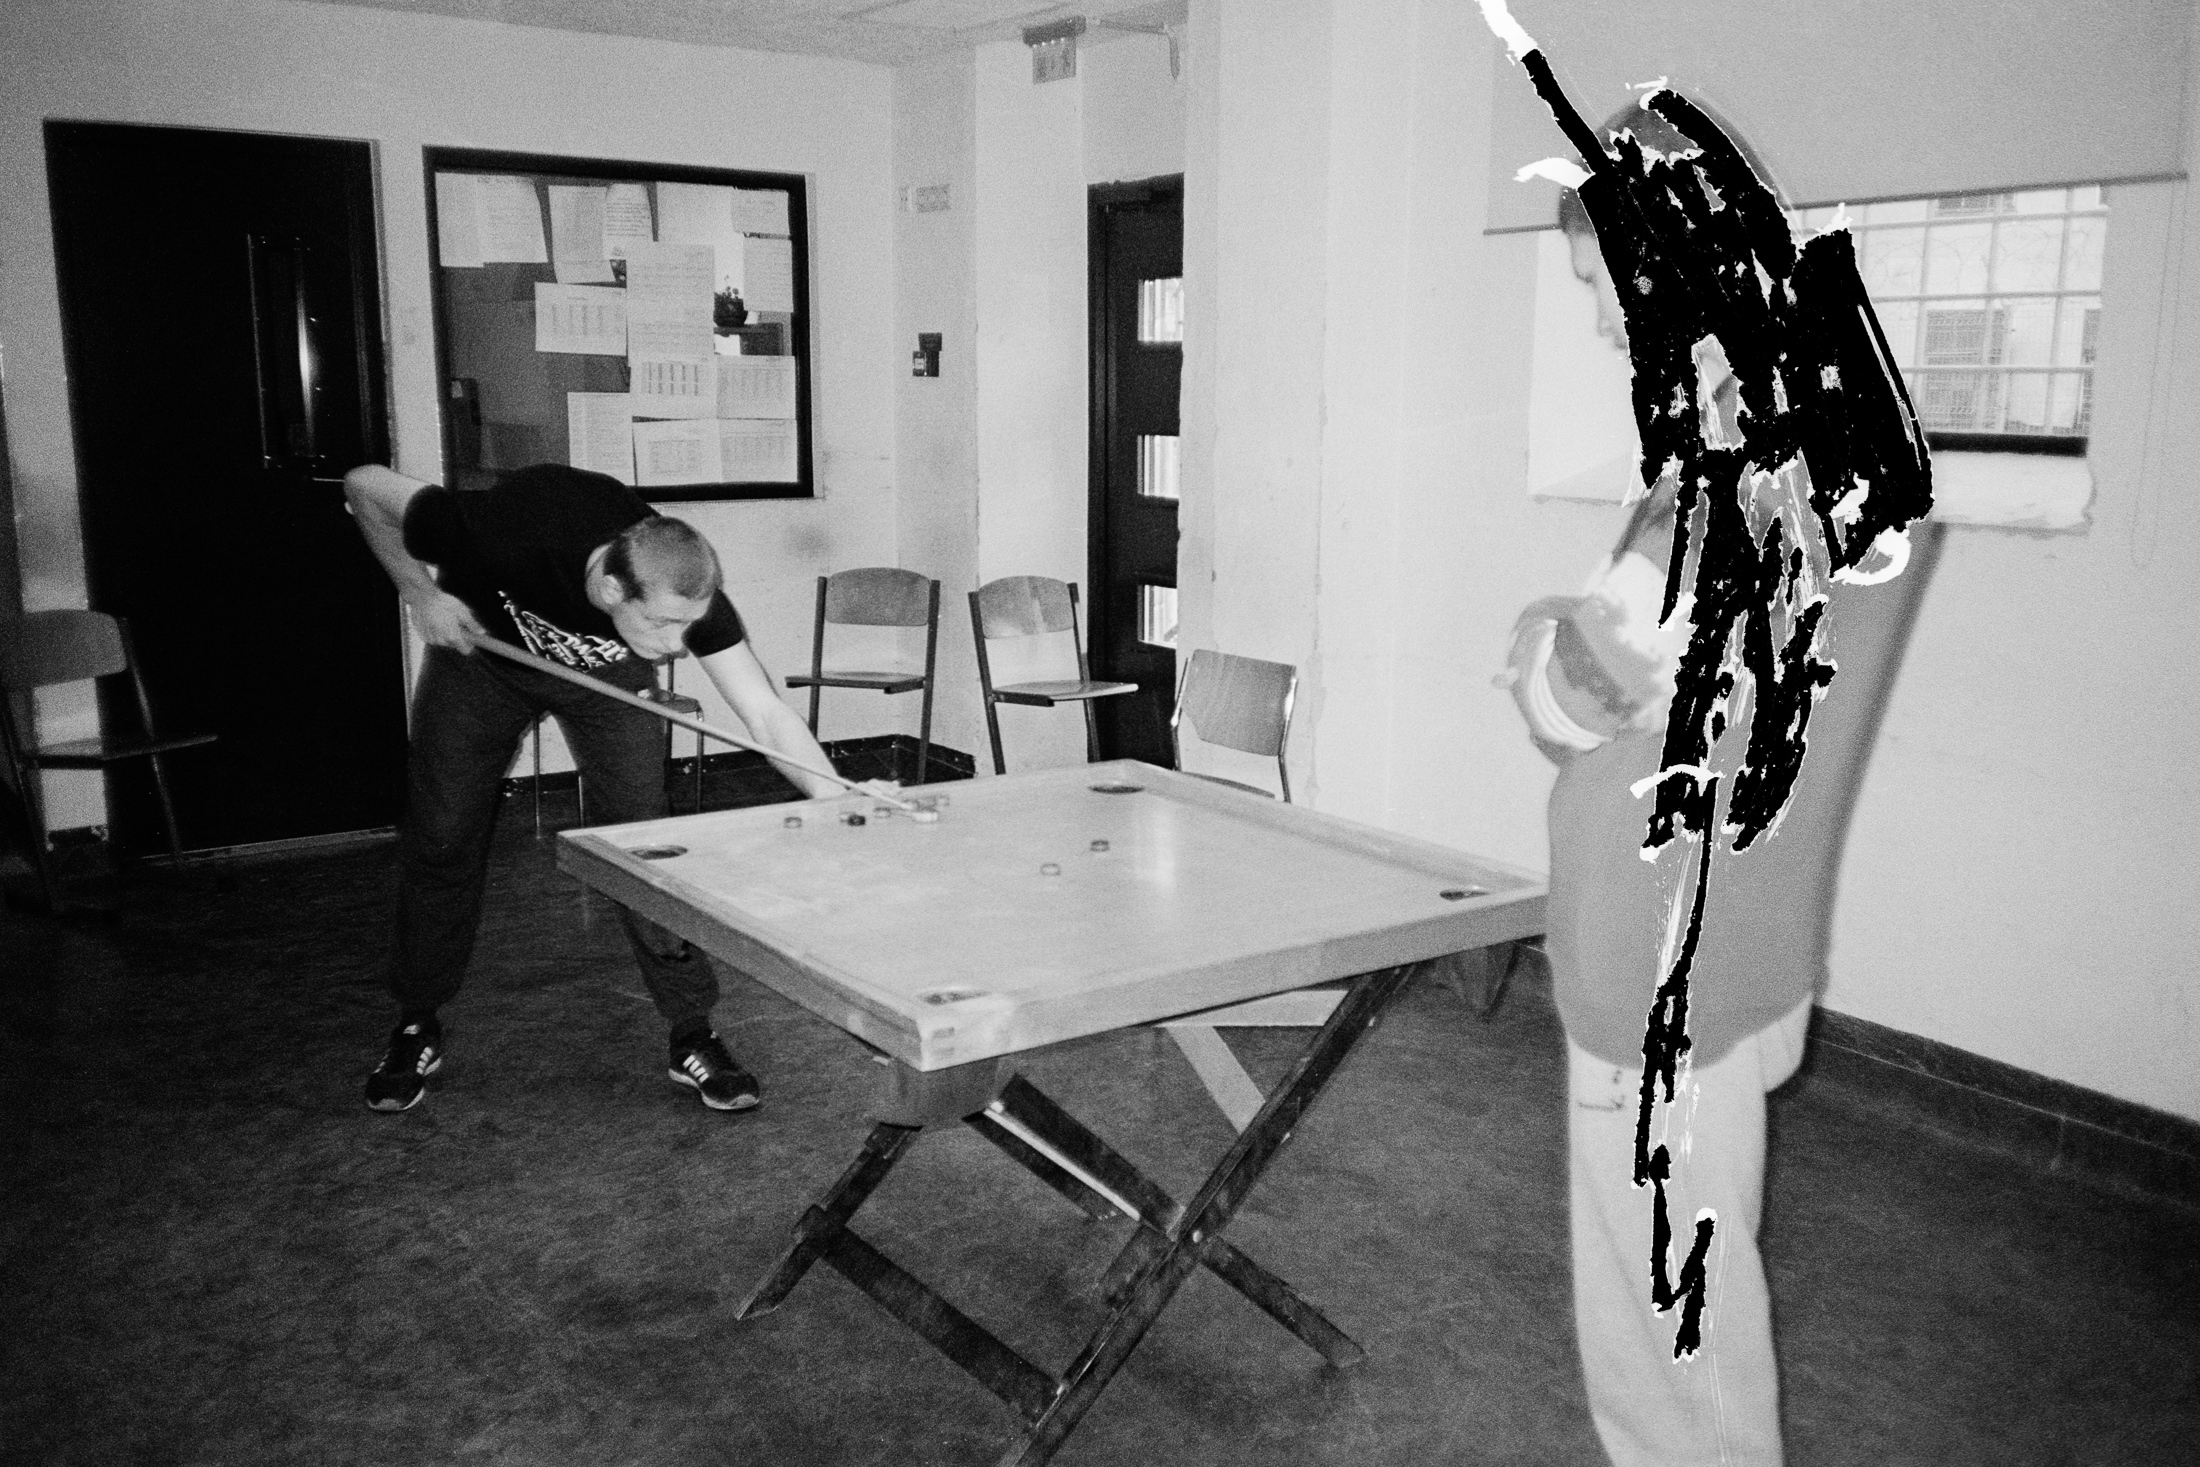 Here the prisoners play a Latvian snooker game called novuss. On the negative, I had to scratch one detainee as he was not participating in the photographic project. (photo: Ivo)